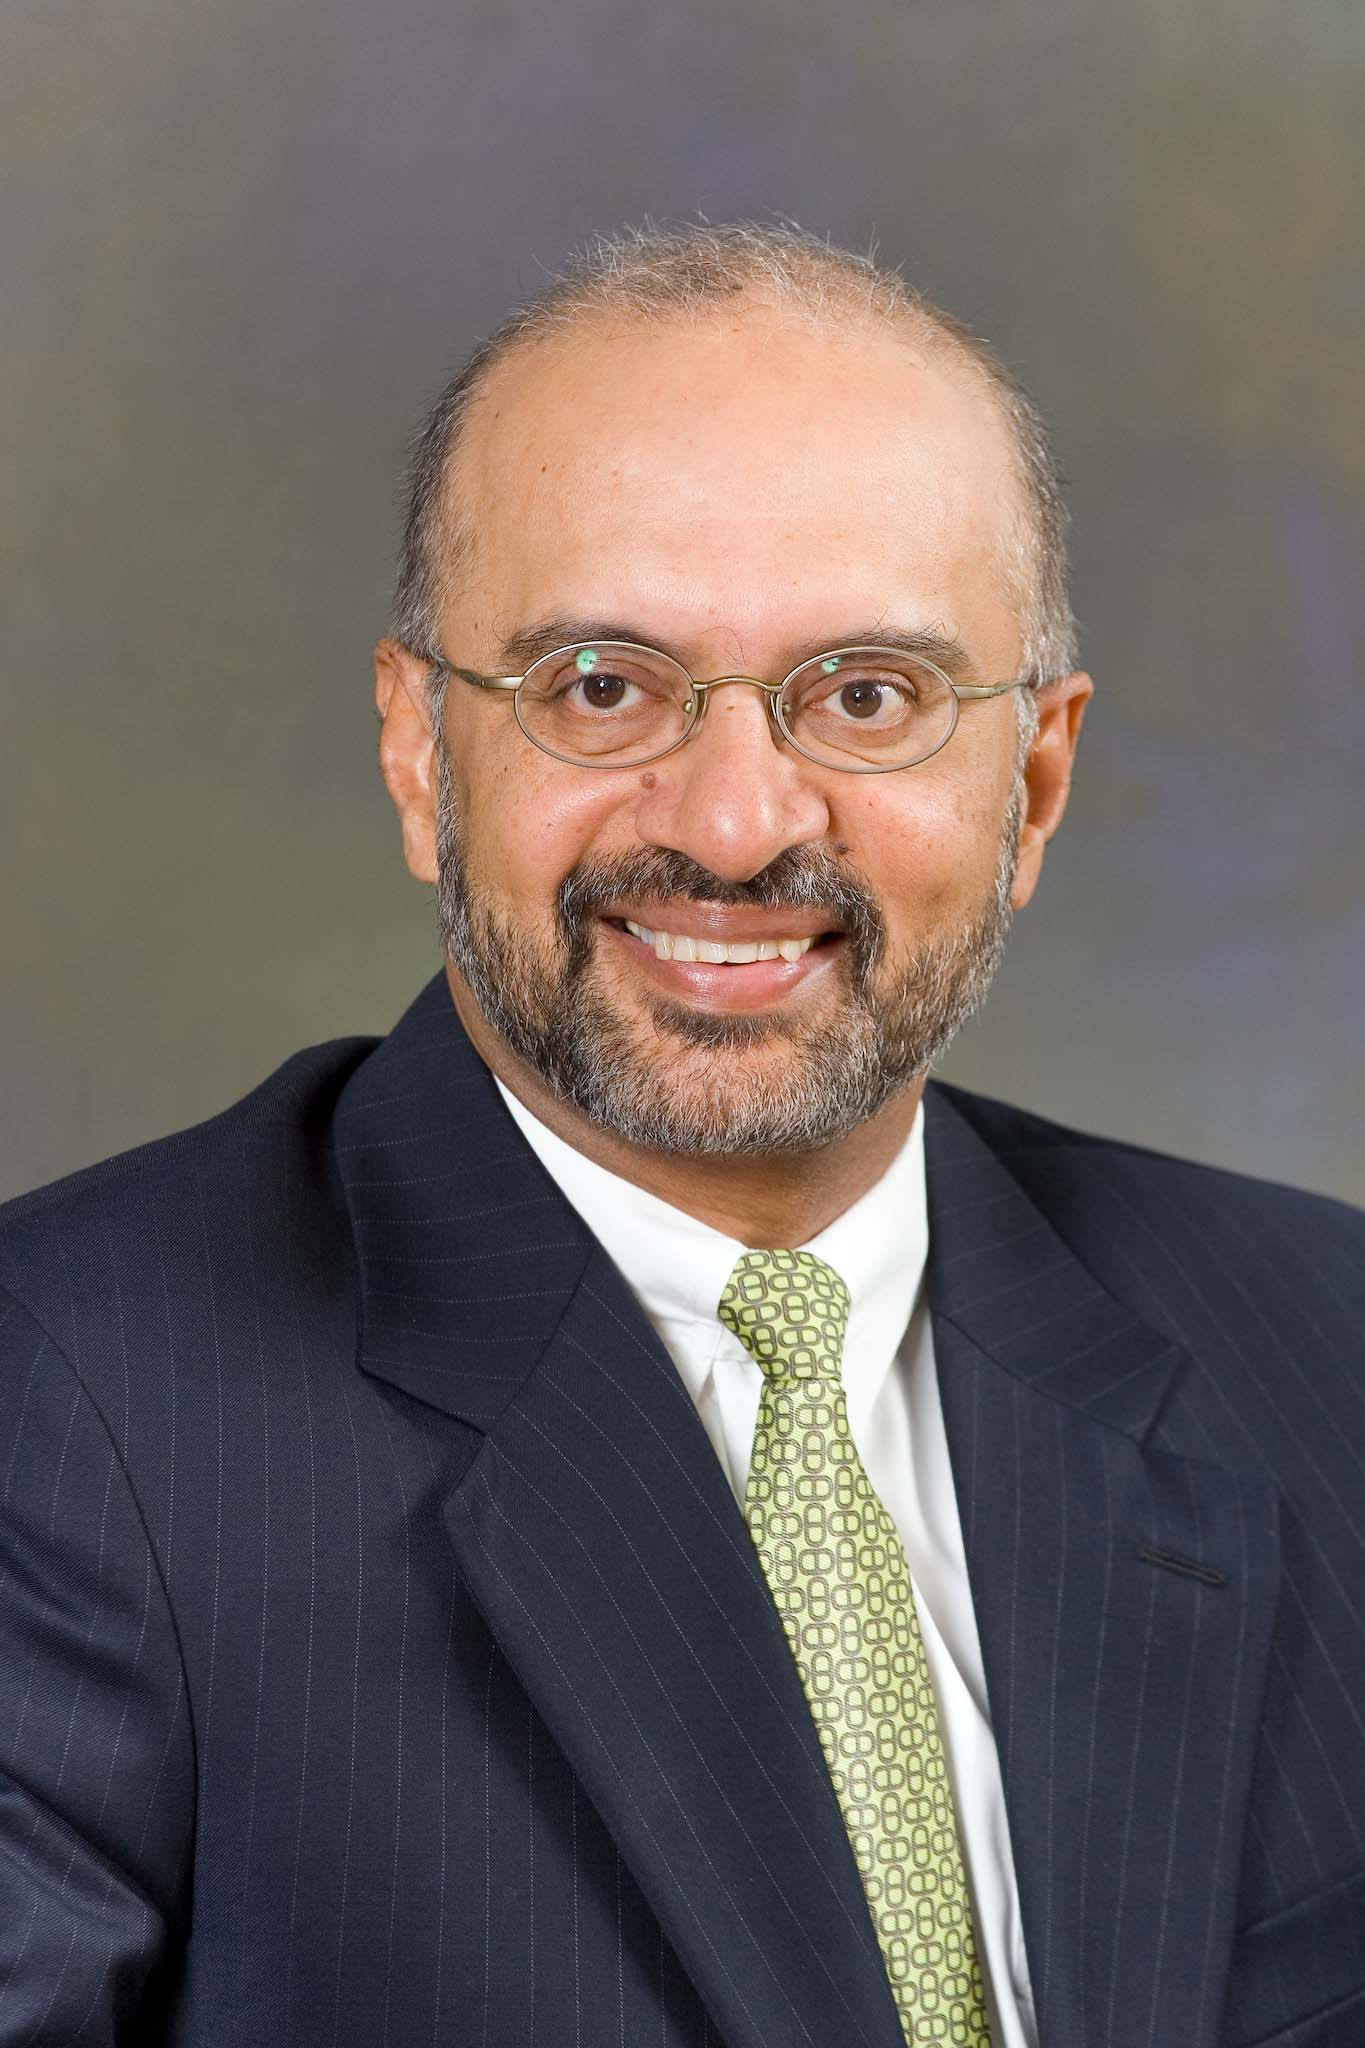 FCA lunch with DBS CEO, Mr. Piyush Gupta